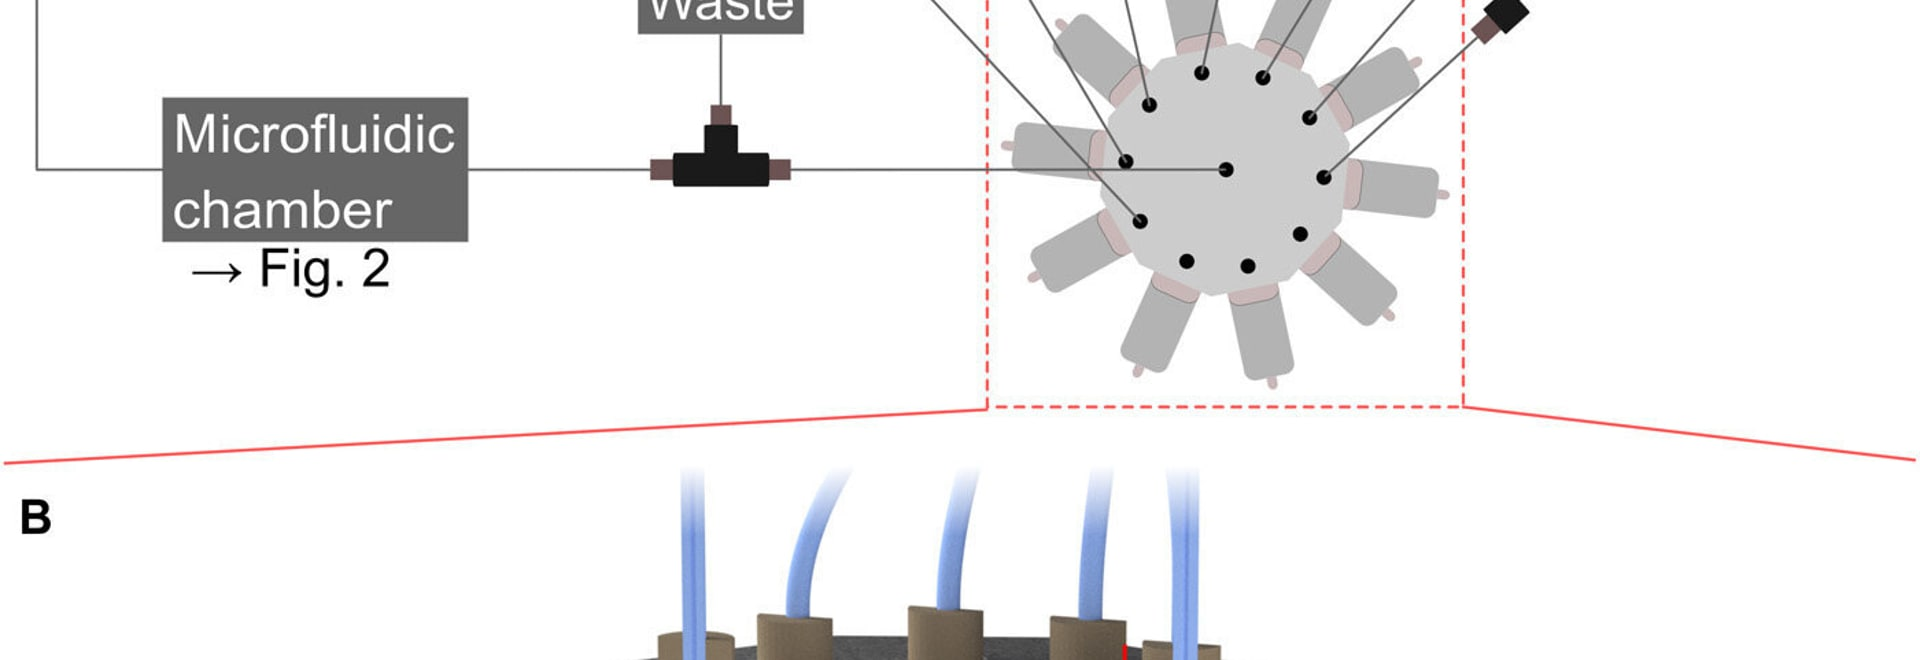 Researchers integrate microfluidic system into DLW 3D printer for multimaterial nanoprinting